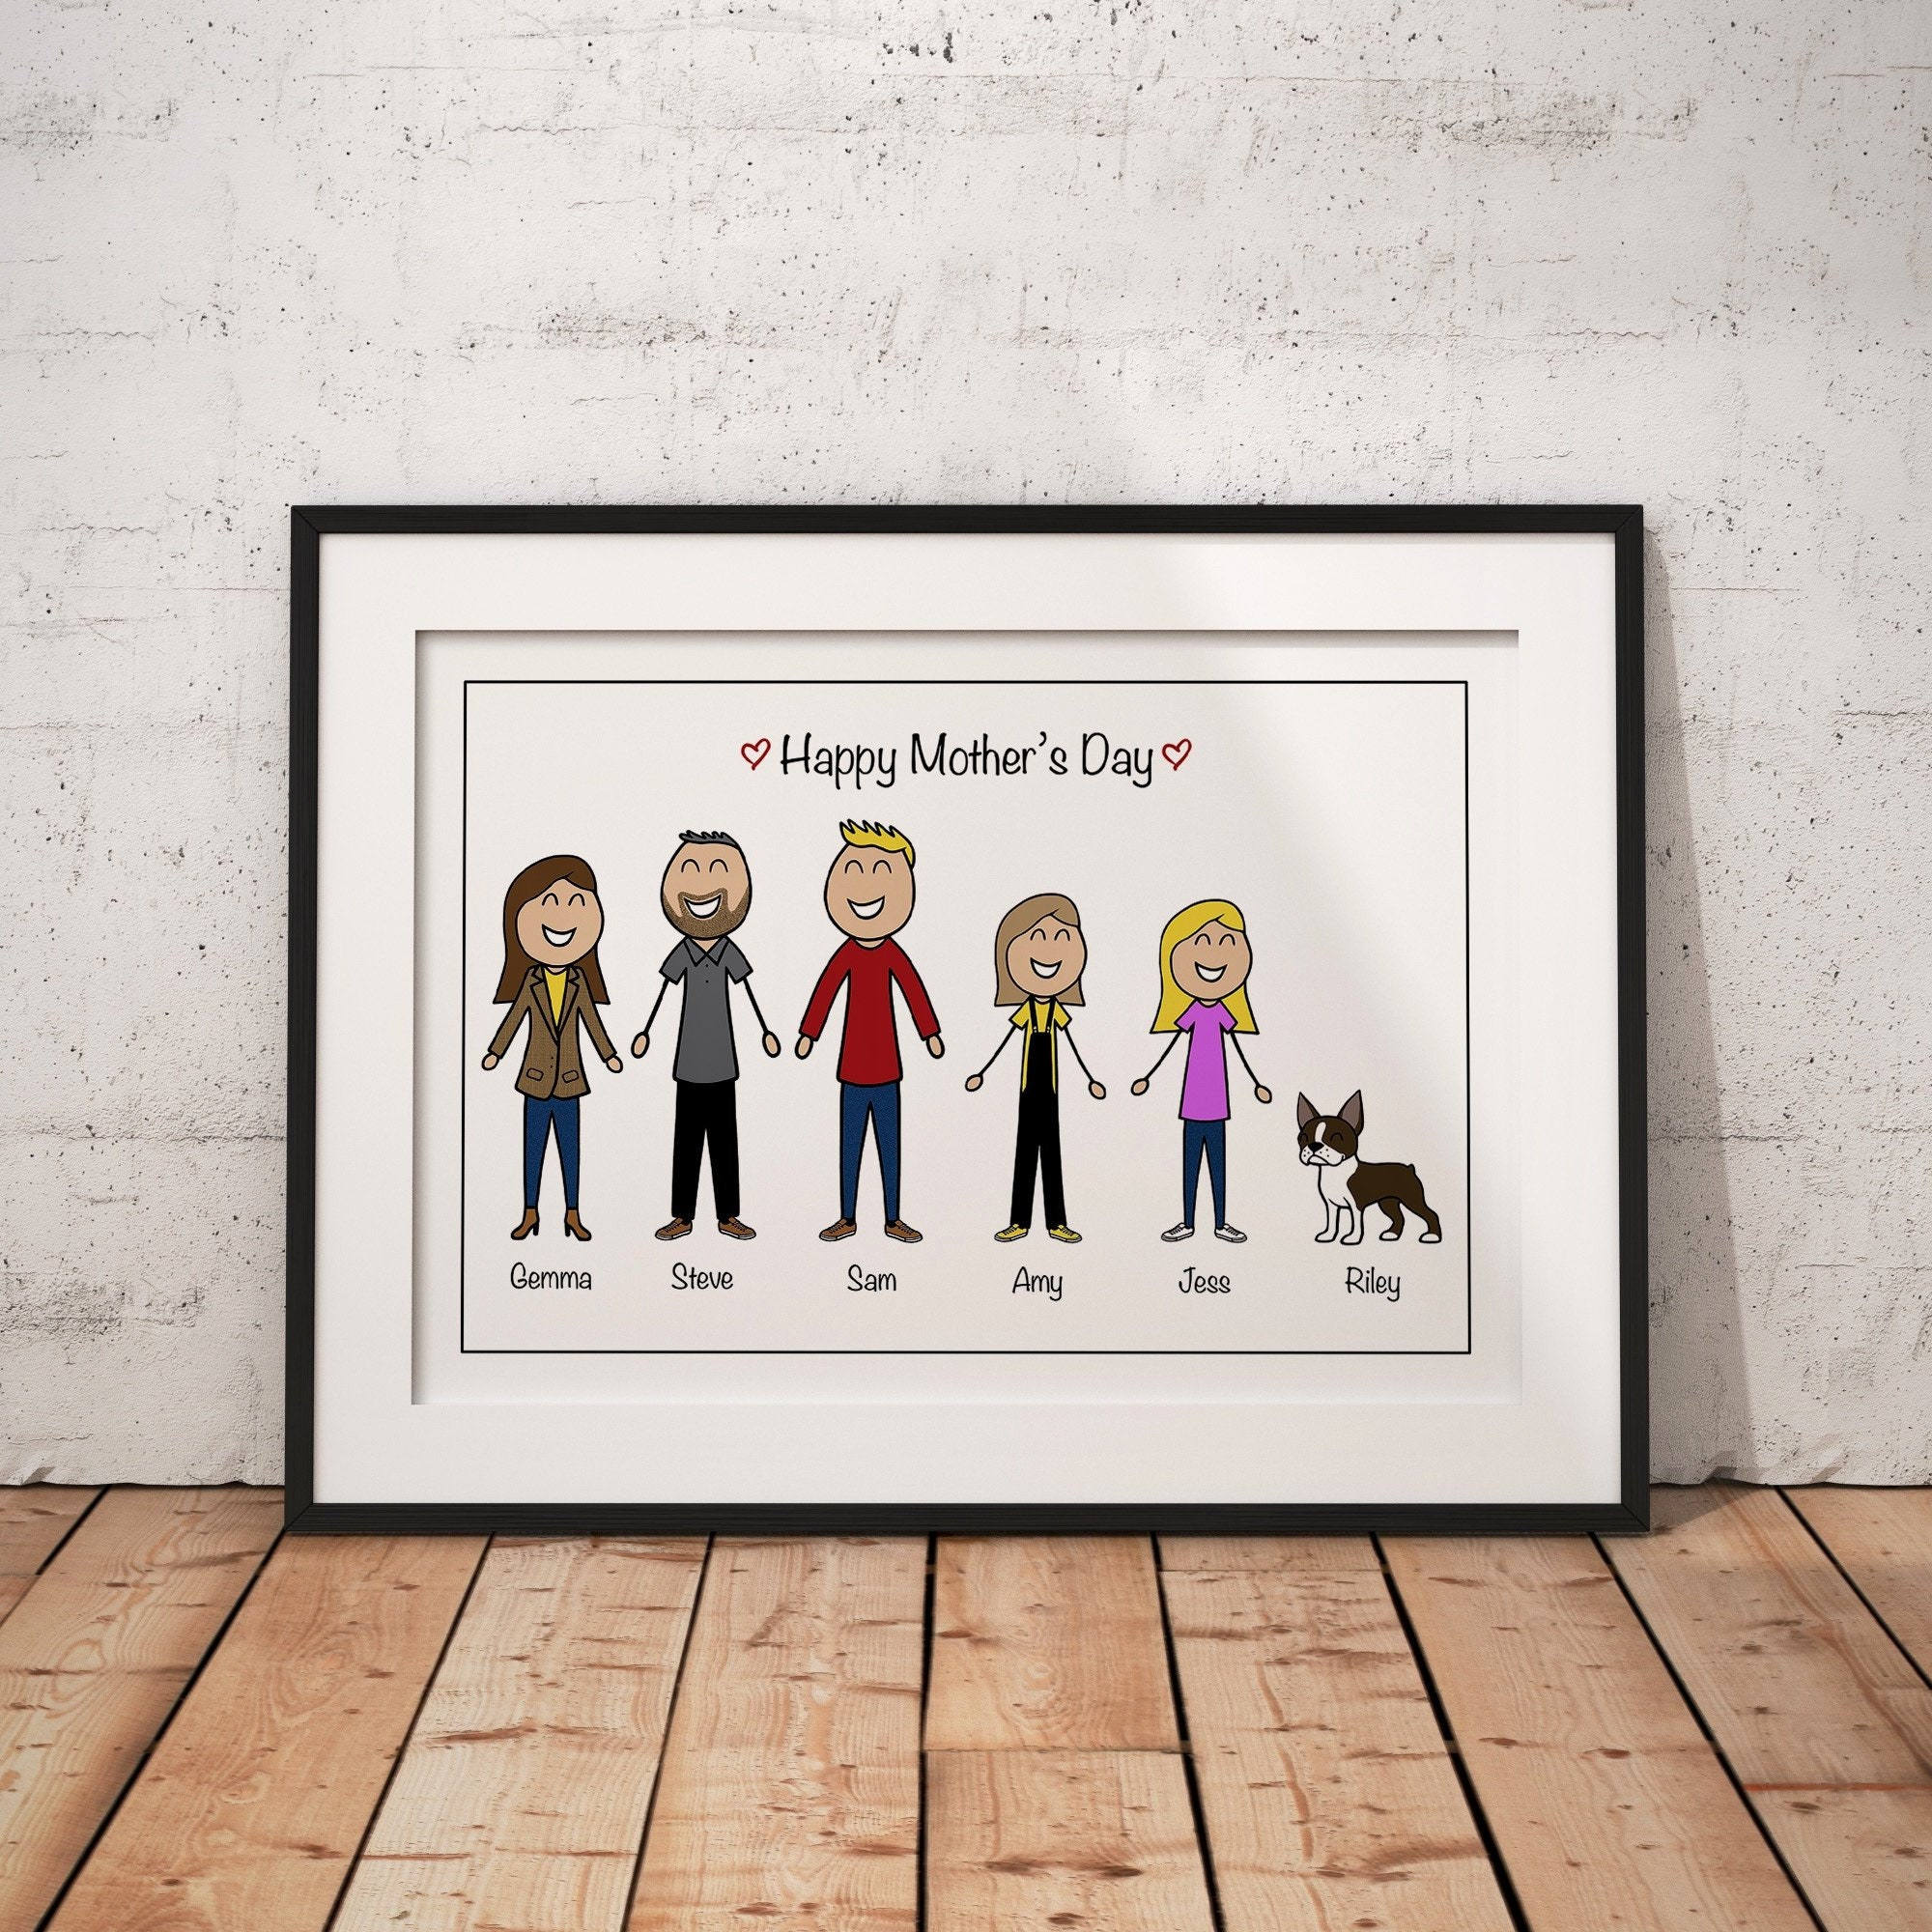 Personalised Mothers Day Gift Husband Etsy Jpg 2000x2000 Handmade Gifts Anniversary Boyfriend Birthday Doodles